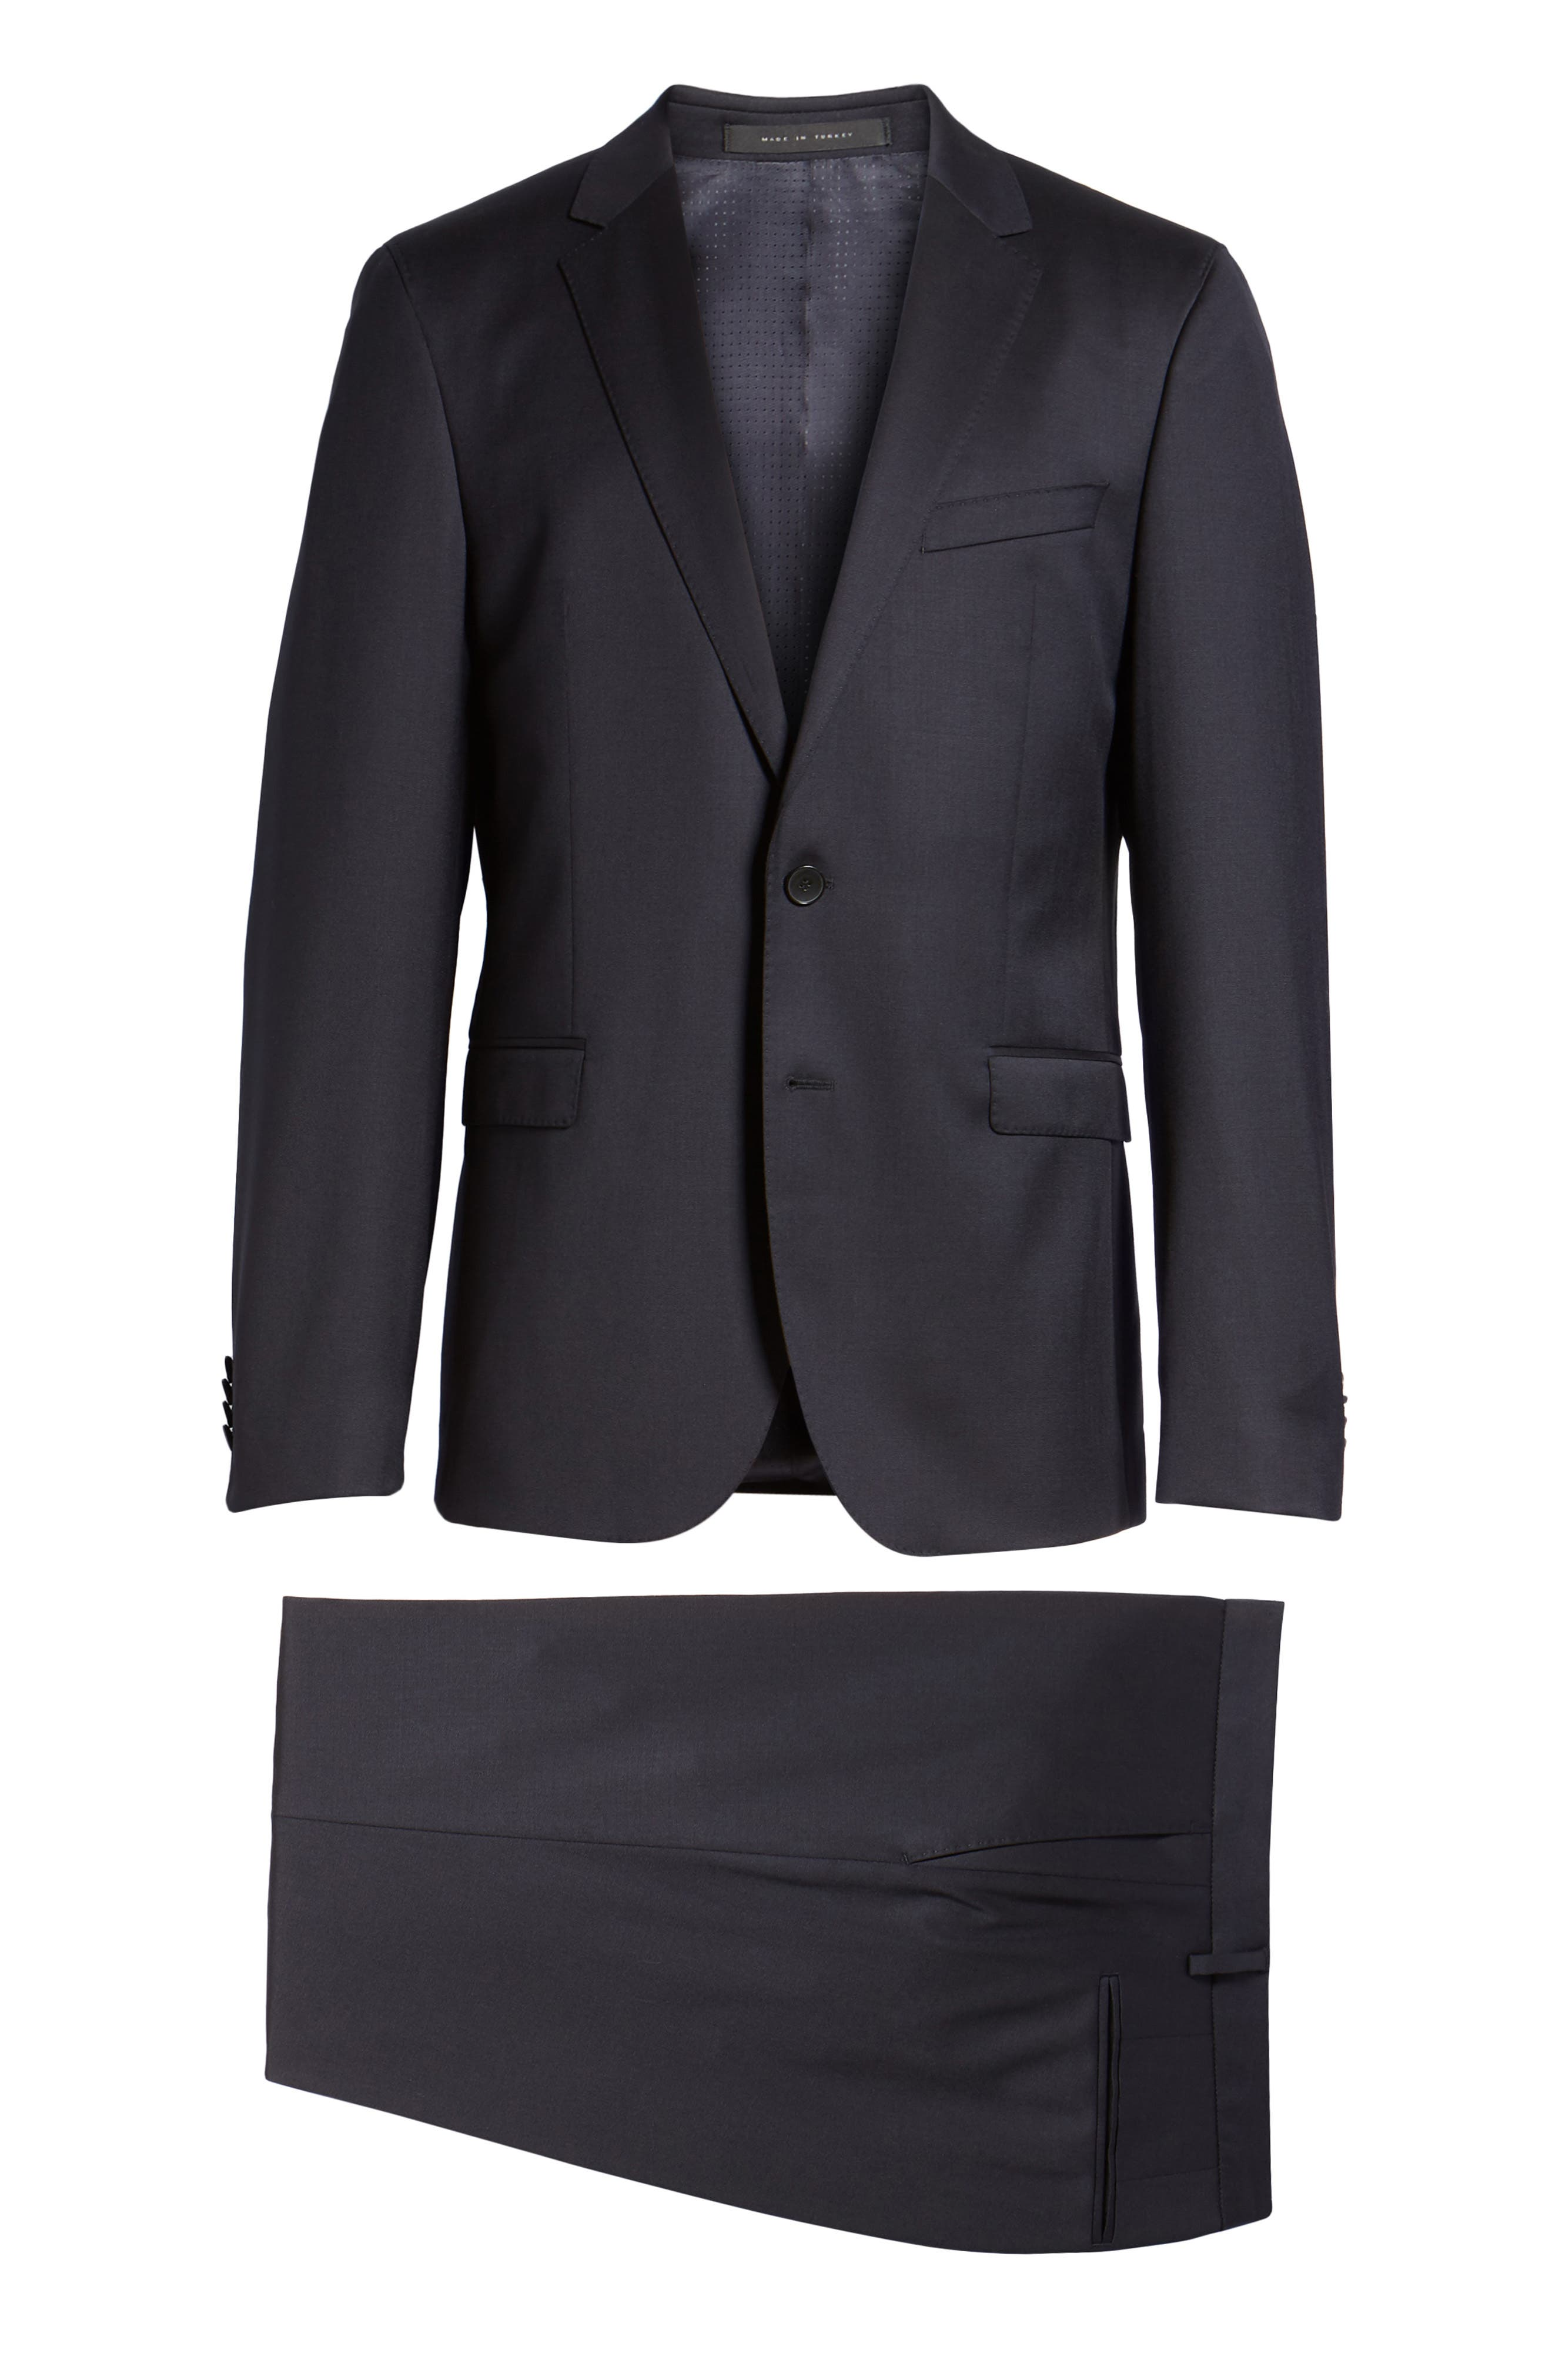 Ryan/Win Extra Trim Fit Solid Wool Suit,                             Alternate thumbnail 8, color,                             Dark Blue